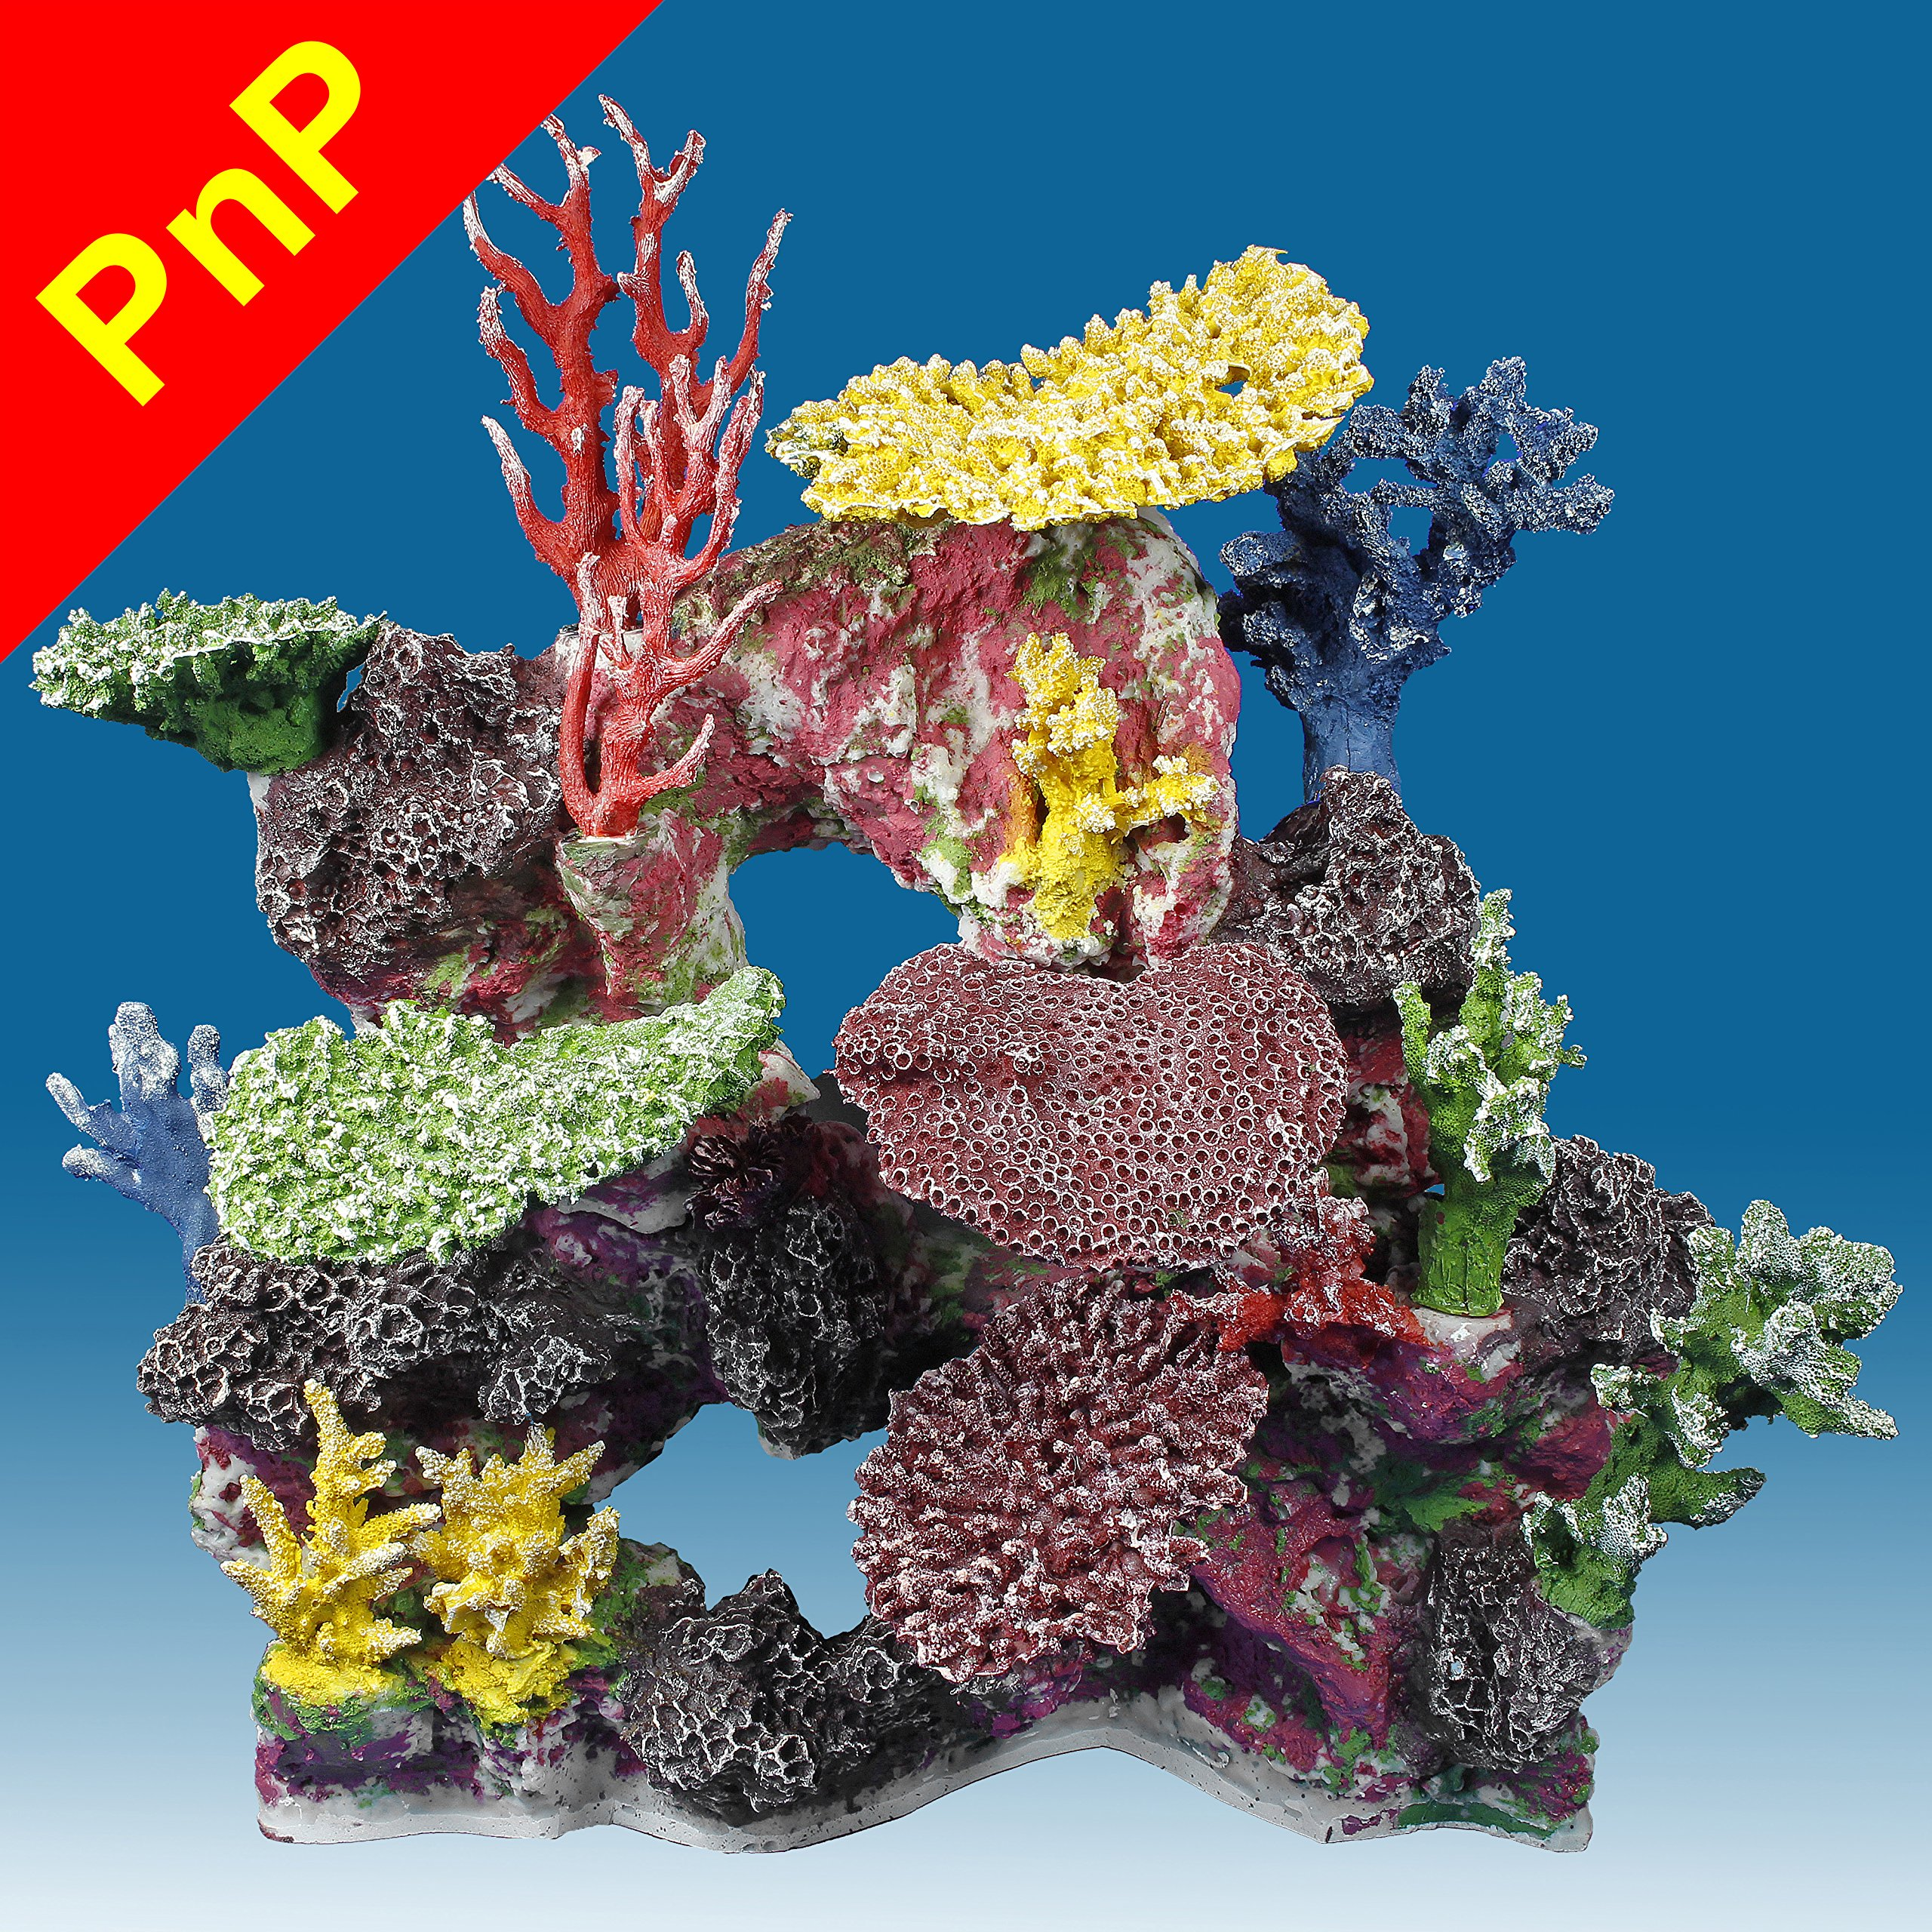 Instant Reef DM043PNP Fish Tank Decorations Large, Aquarium Décor Ornament, Fake Coral Reef Tank for Saltwater Marine and Freshwater Fish